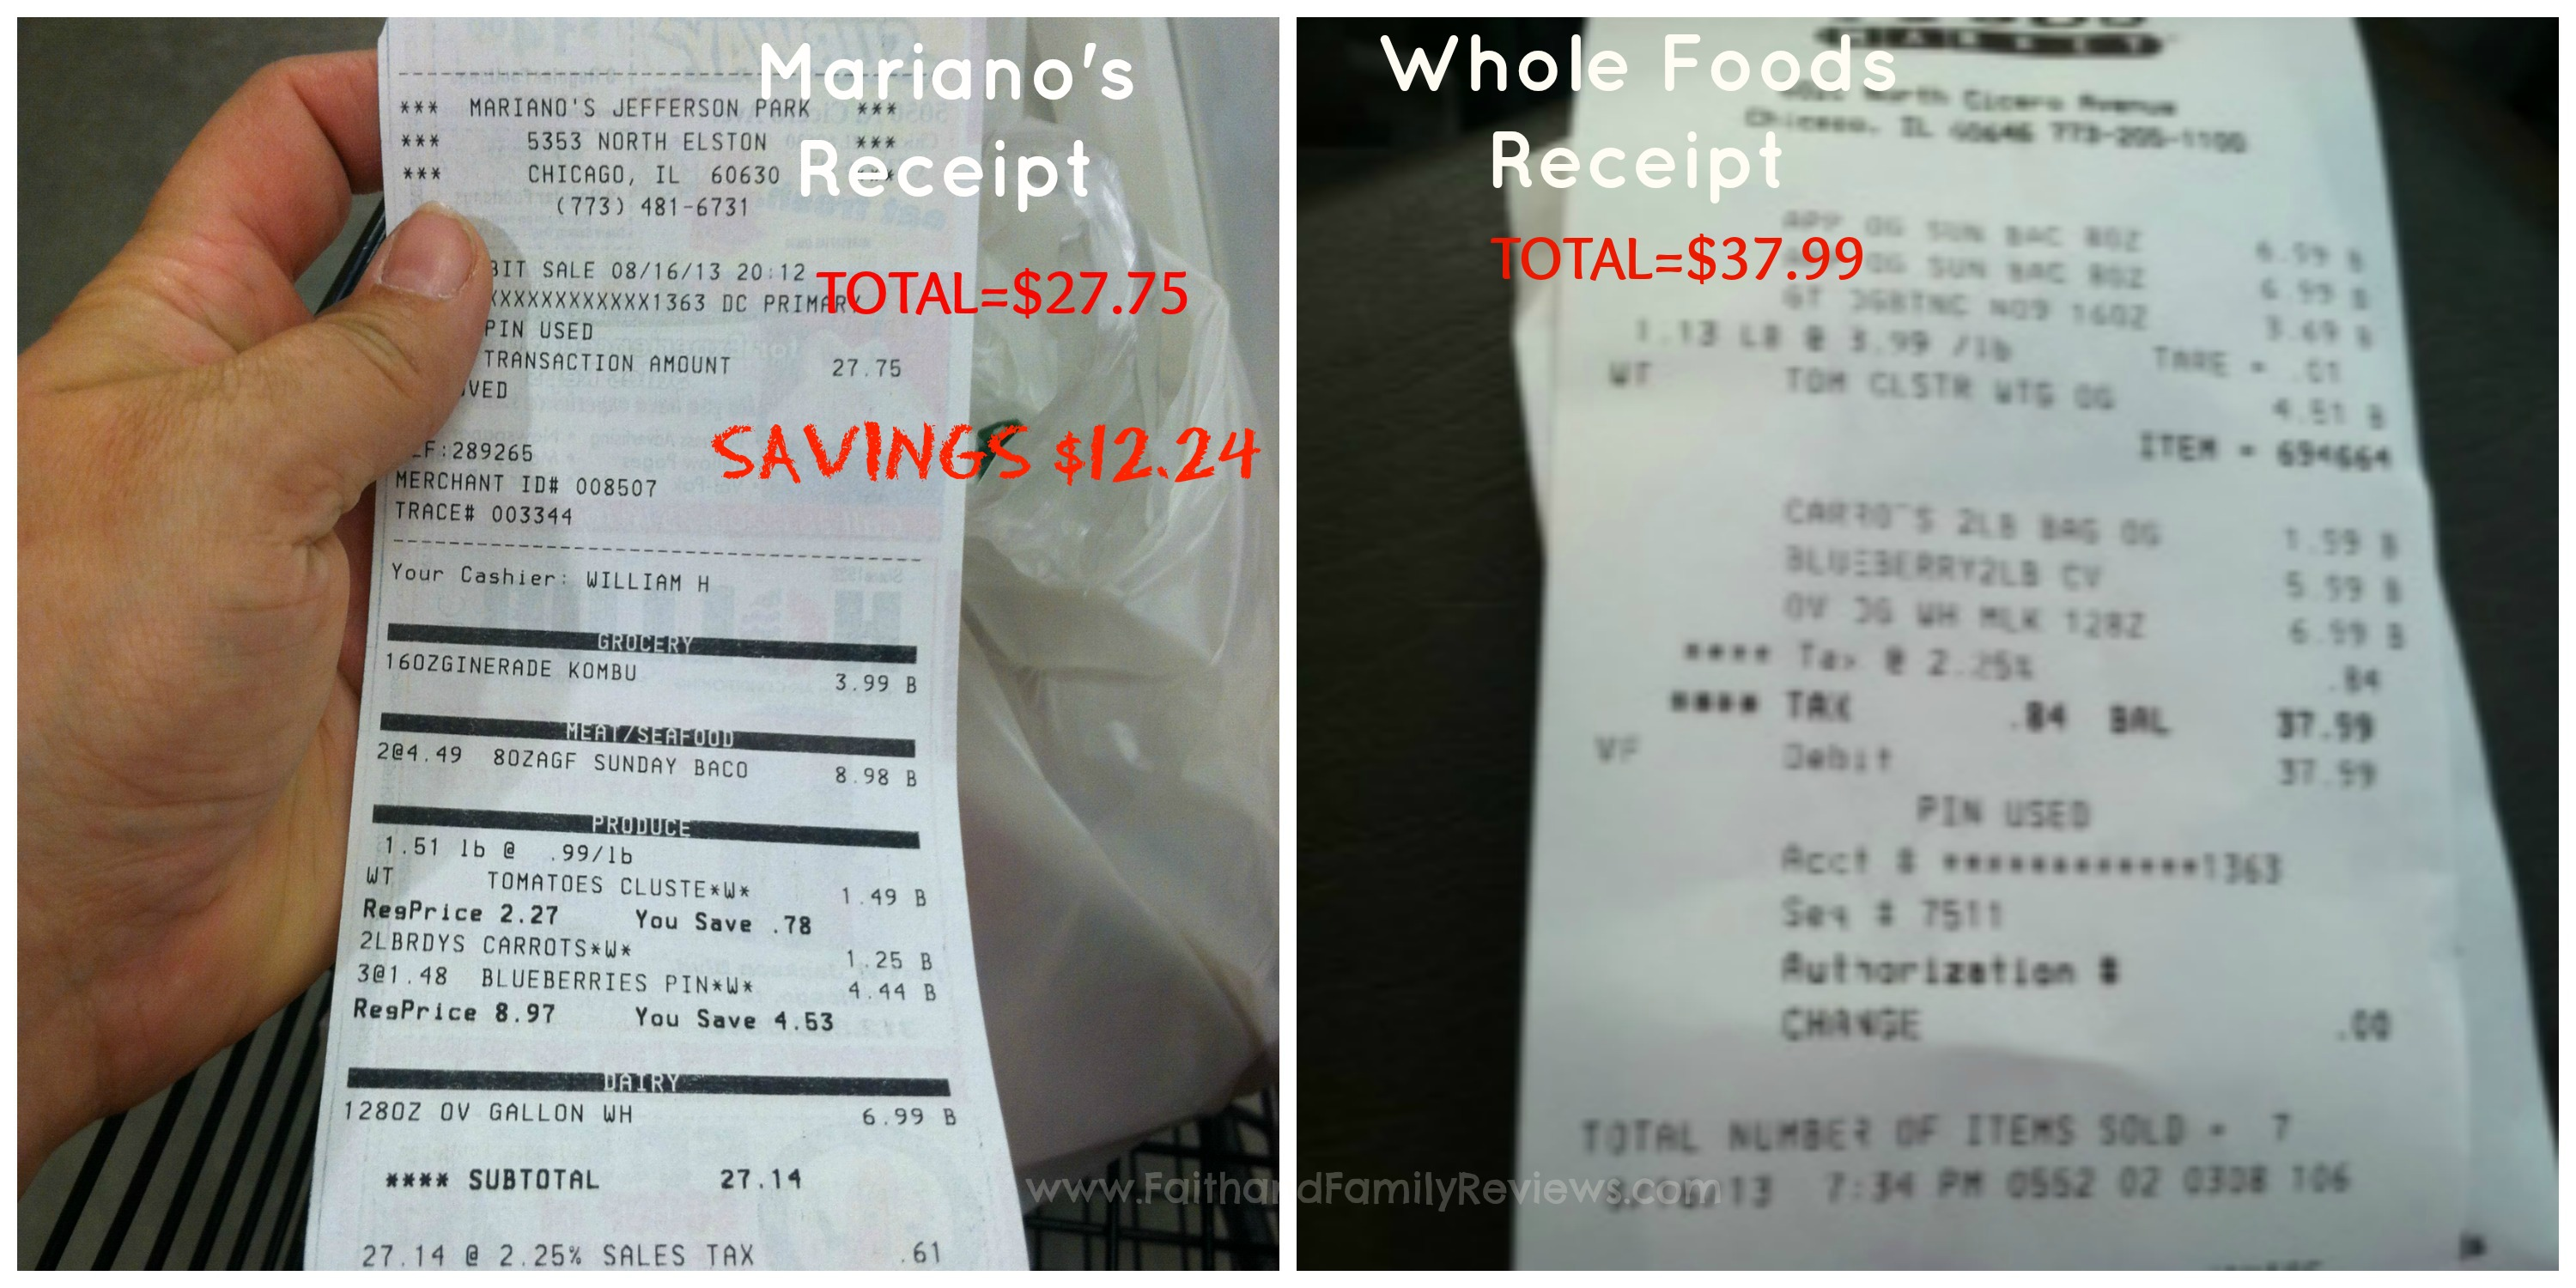 Mariano's Receipt Comparison